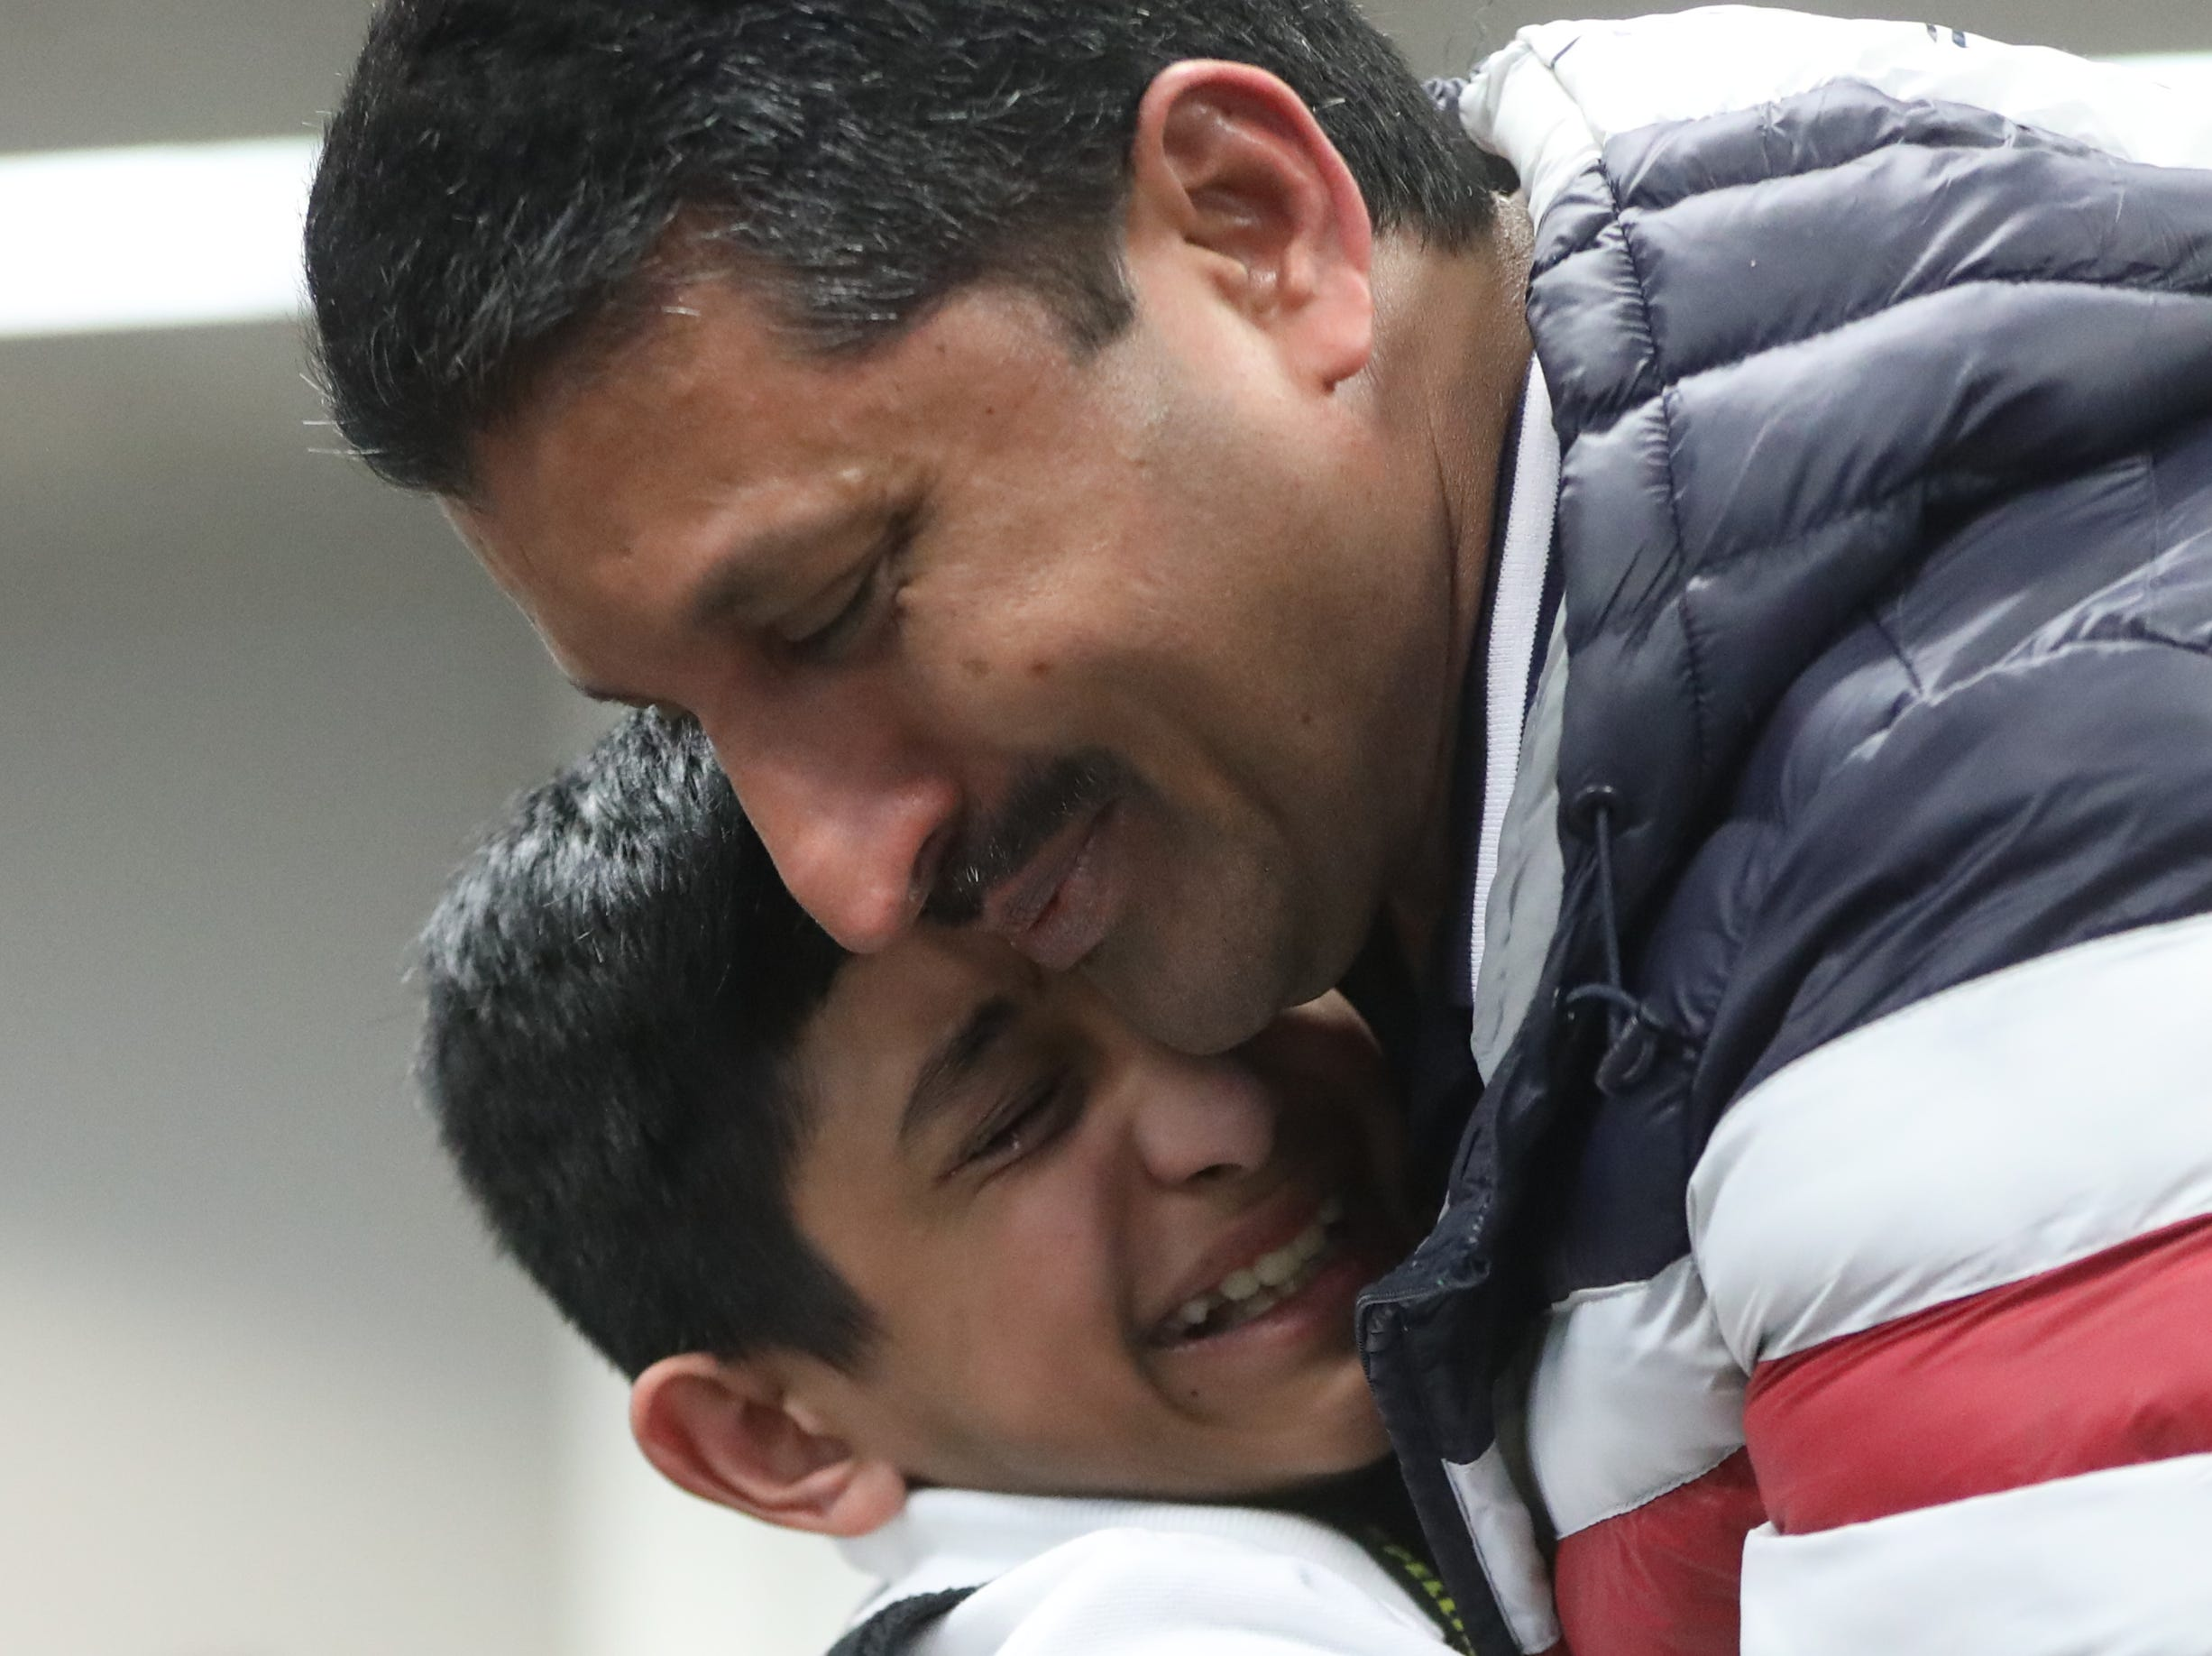 Spelling bee champion, Jeremiah Markose sheds tears of joy as he hugs his dad, Regimon Markose. Thursday, March 14, 2019